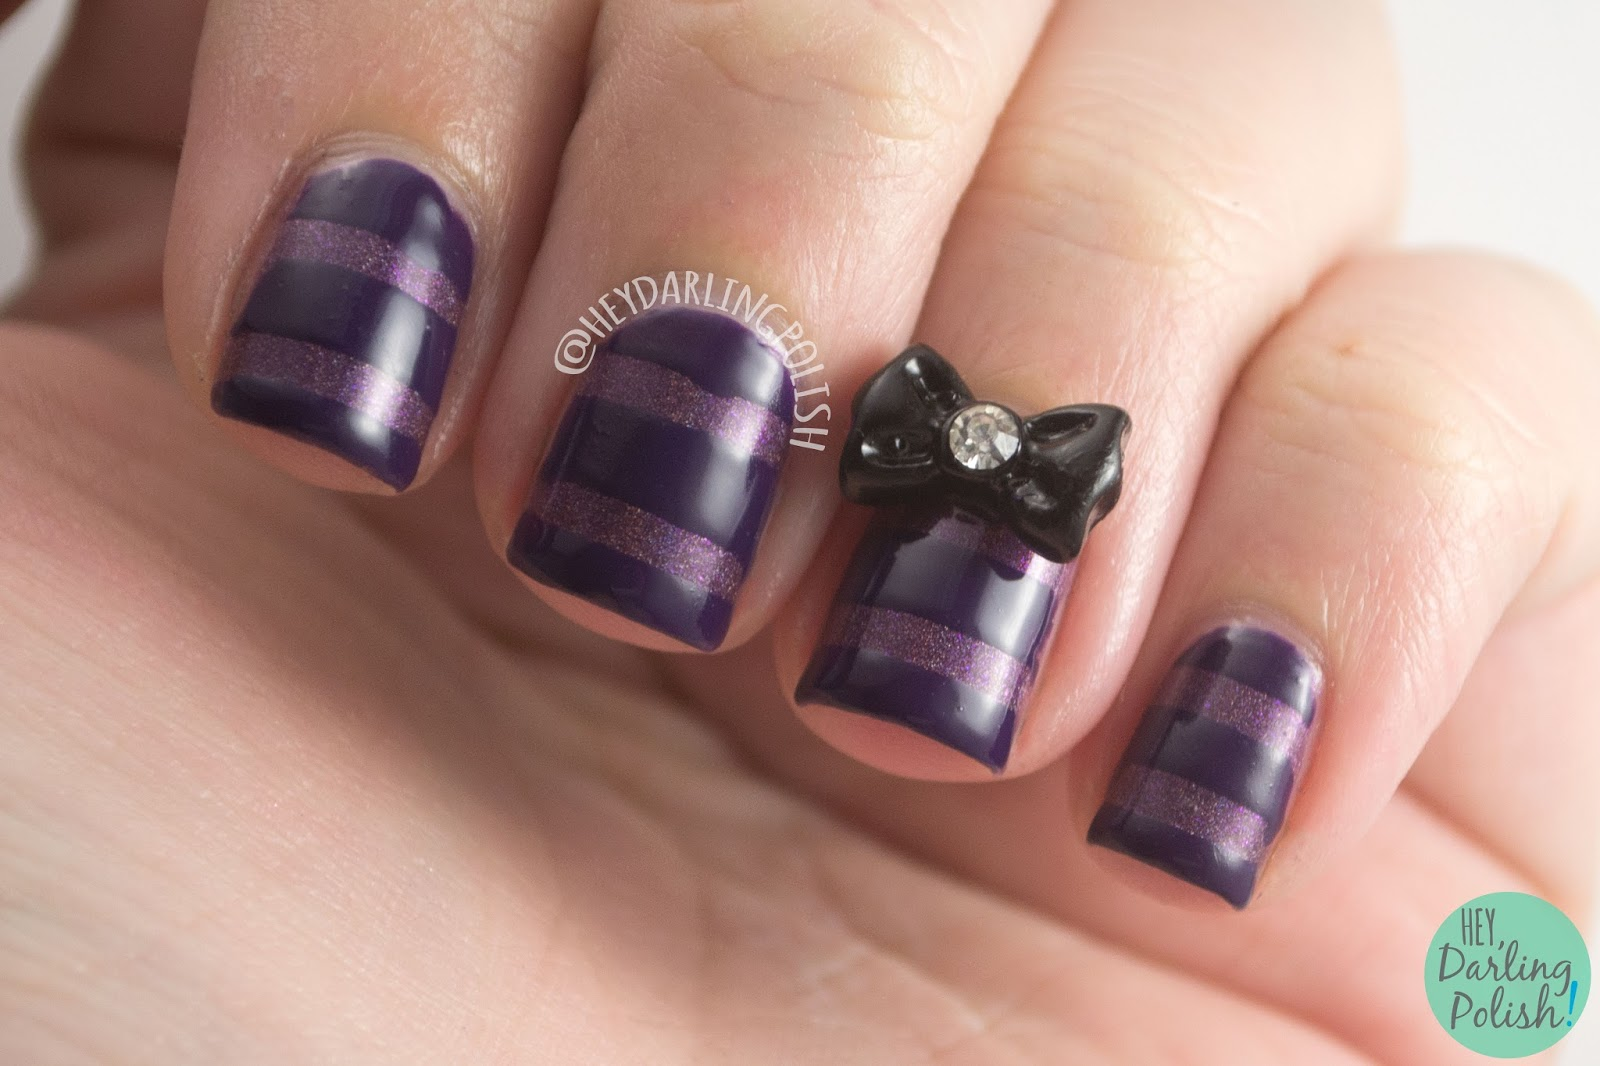 purple, let your hair down, stripes, bow, nails, nail art, nail polish, indie polish, fair maiden polish, hey darling polish,